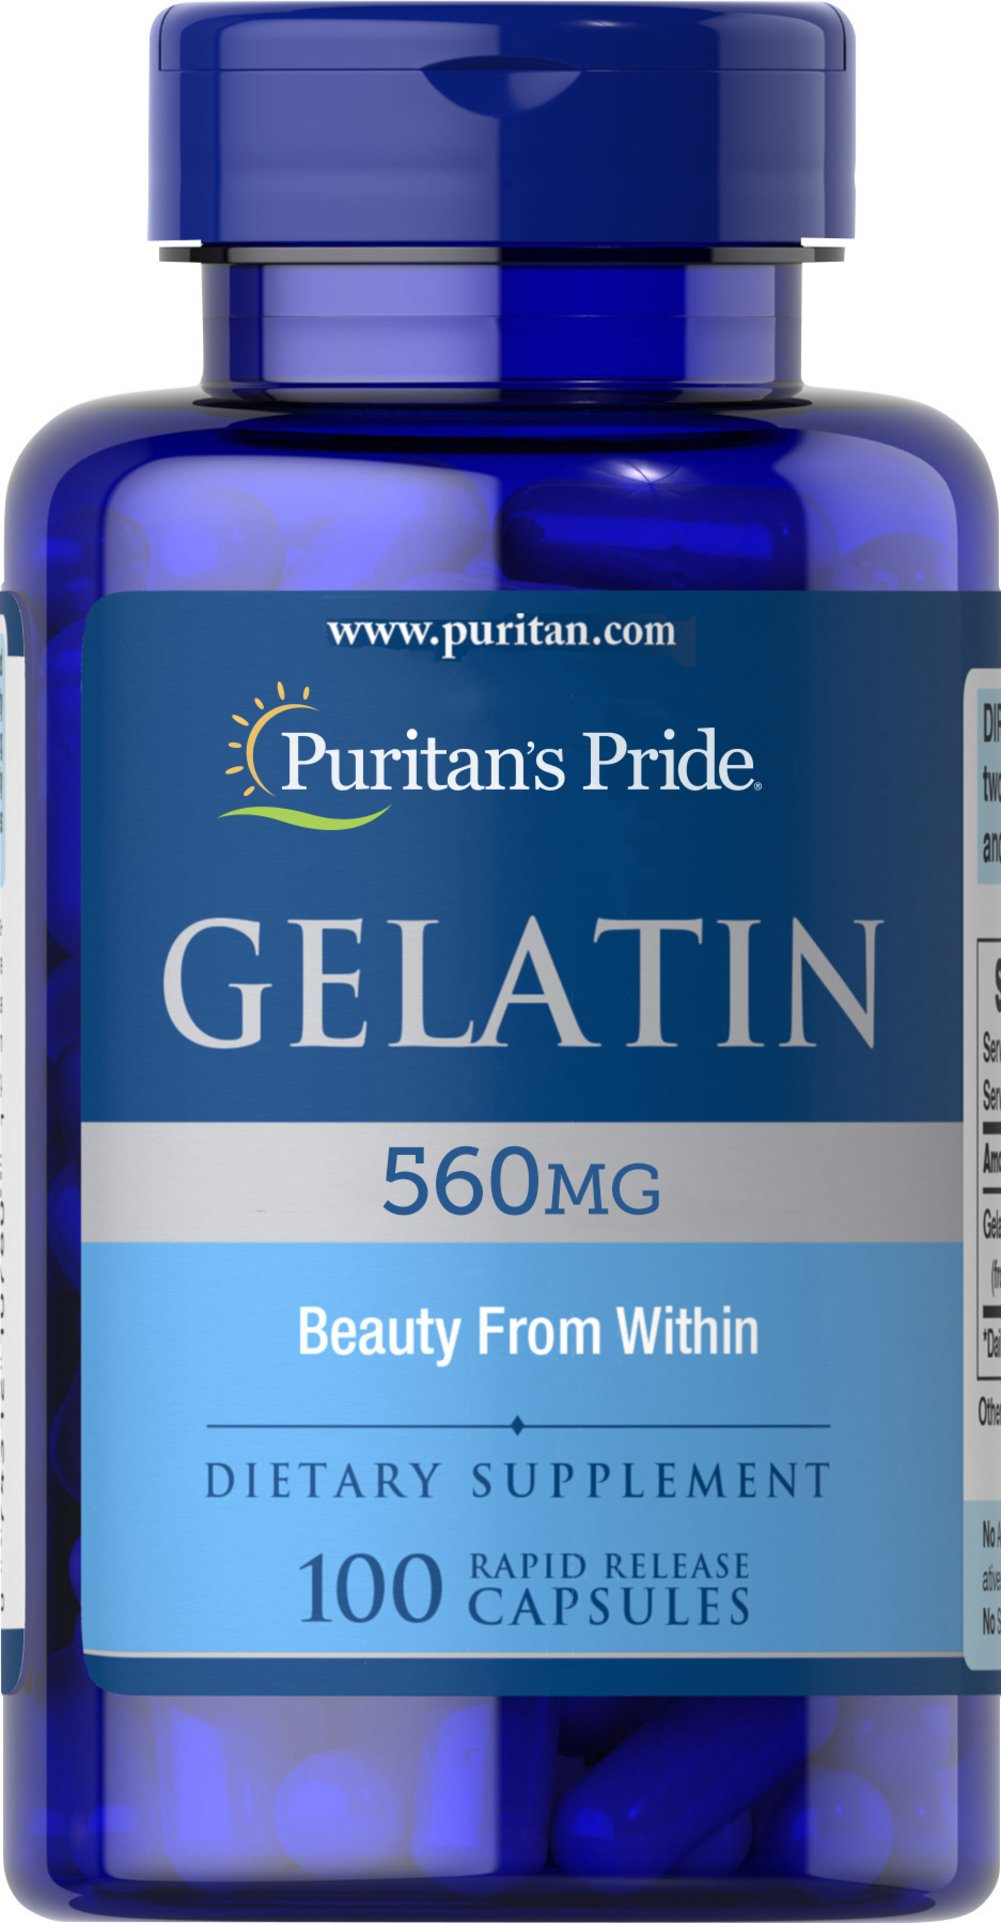 Gelatin 650 mg <p>Supports the Beauty of Nails**</p><p>An active lifestyle, harsh detergents, on-the-run nutrition - all can have an effect on the health of your nails.   Gelatin is one of the raw materials for collagen, the building block for strong, healthy nails.** As a supplement, Gelatin supports the beauty of your nails.**</p> 100 Capsules 650 mg $10.99